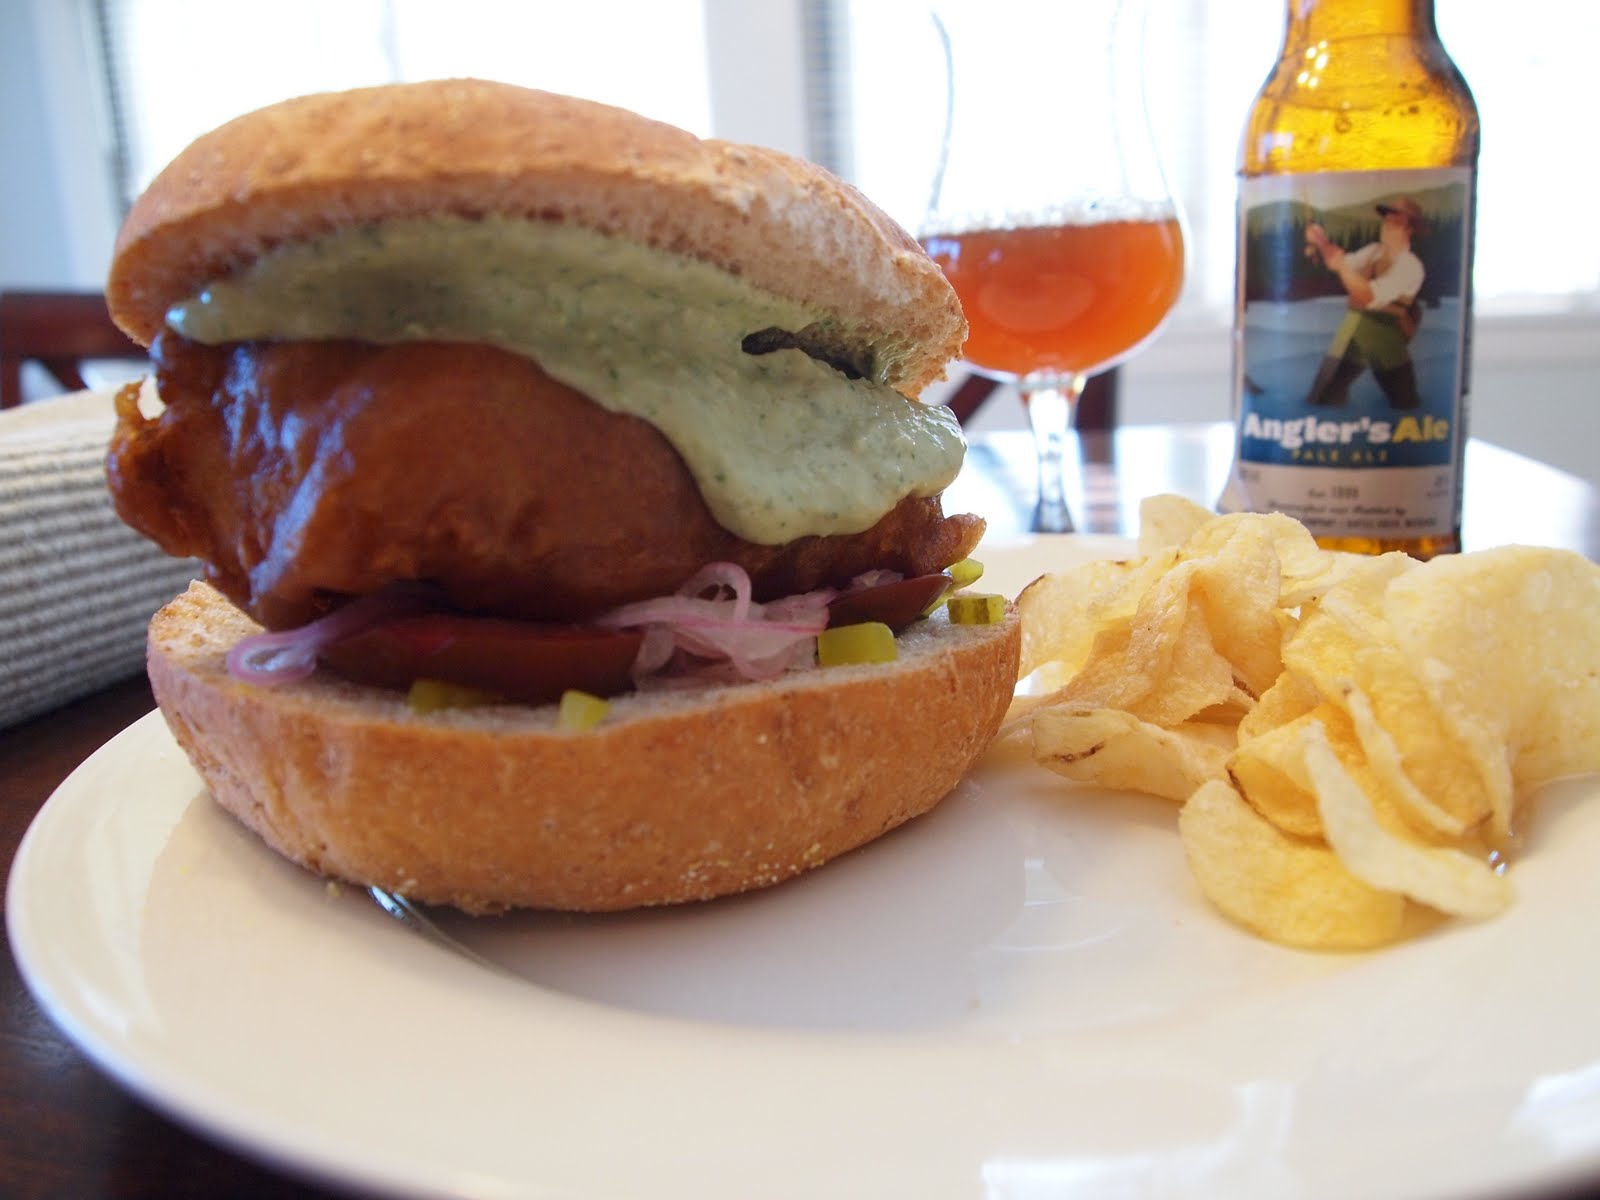 Beer Battered Fish Sandwich The crispy beer batter is?